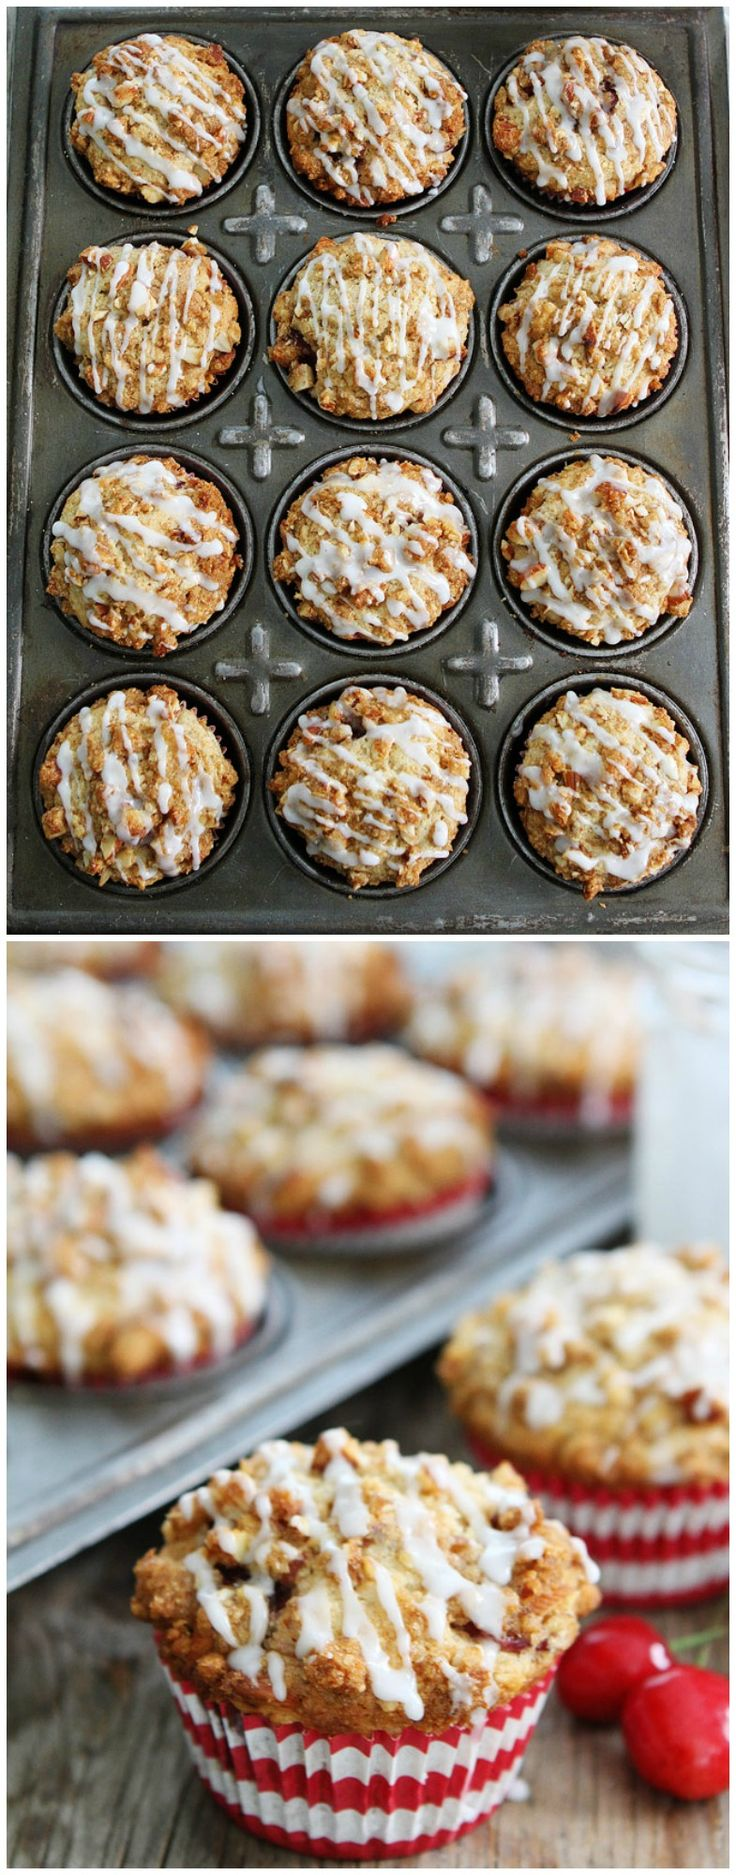 Cherry Almond Streusel Muffin Recipe - Cherry muffins with an almond streusel topping and sweet almond glaze! These muffins make a great summer breakfast treat!